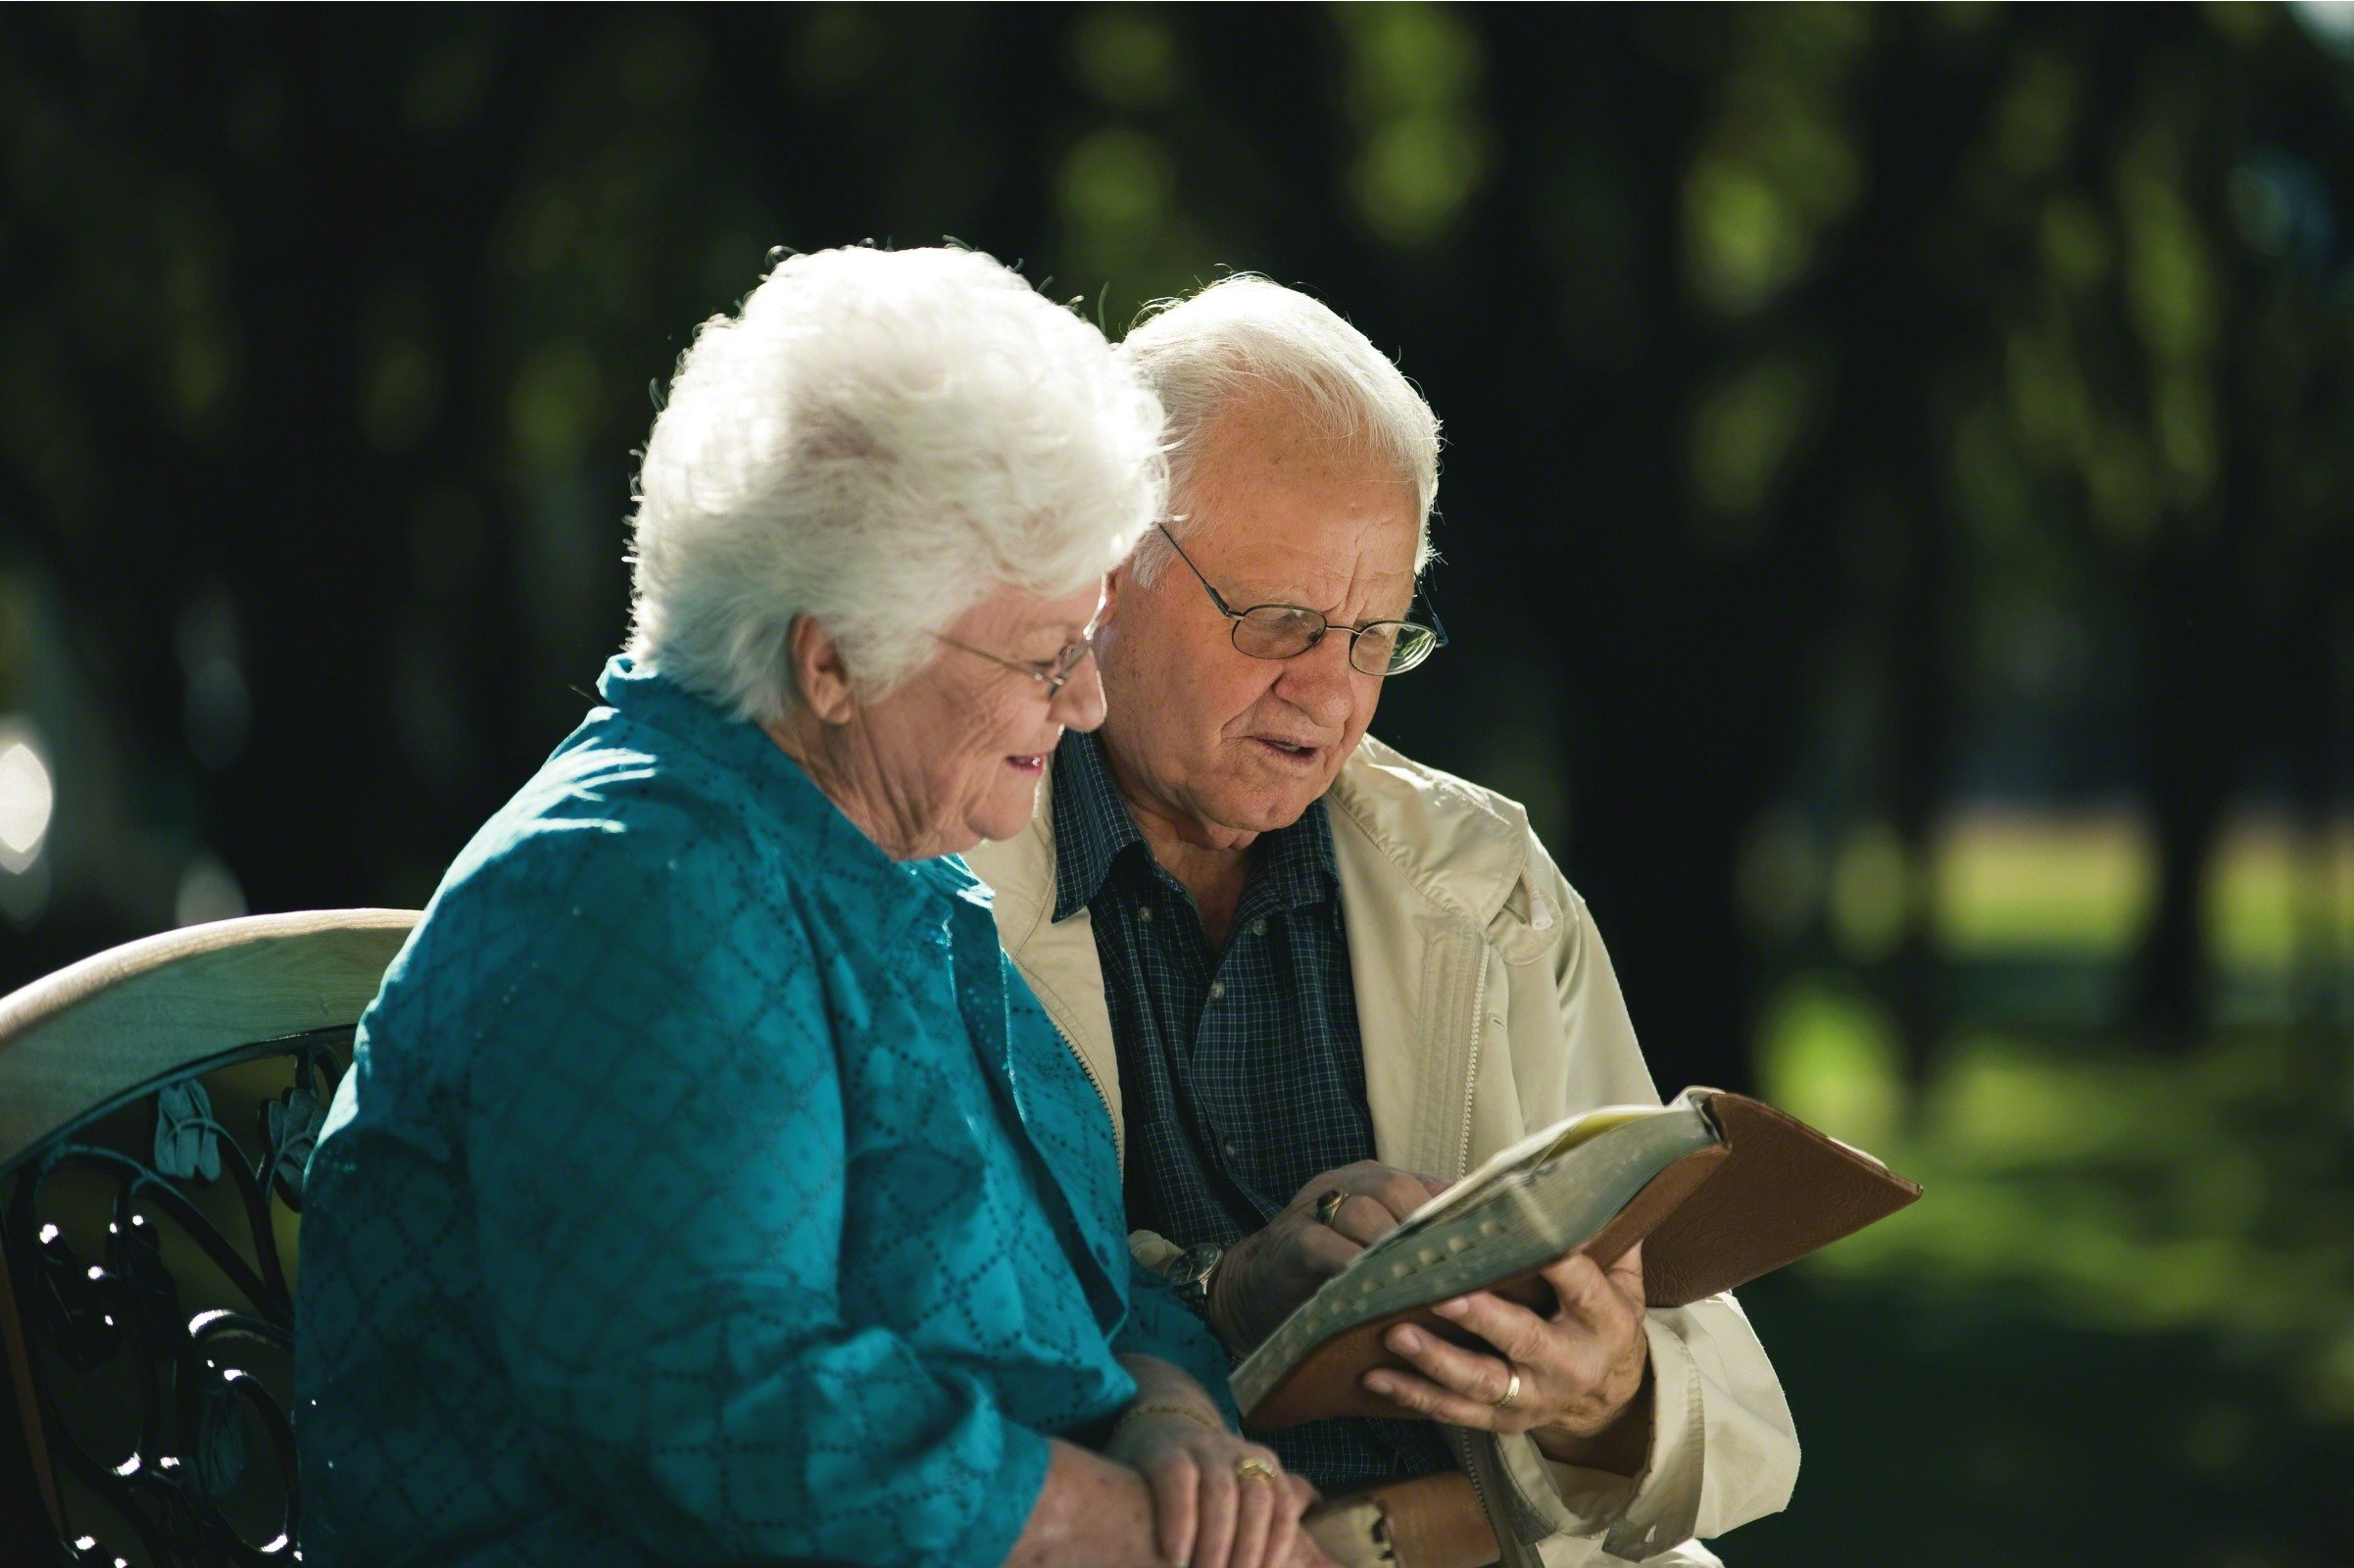 Teachings of President Ezra Taft Benson – Chapter 16: The Elderly in the Church